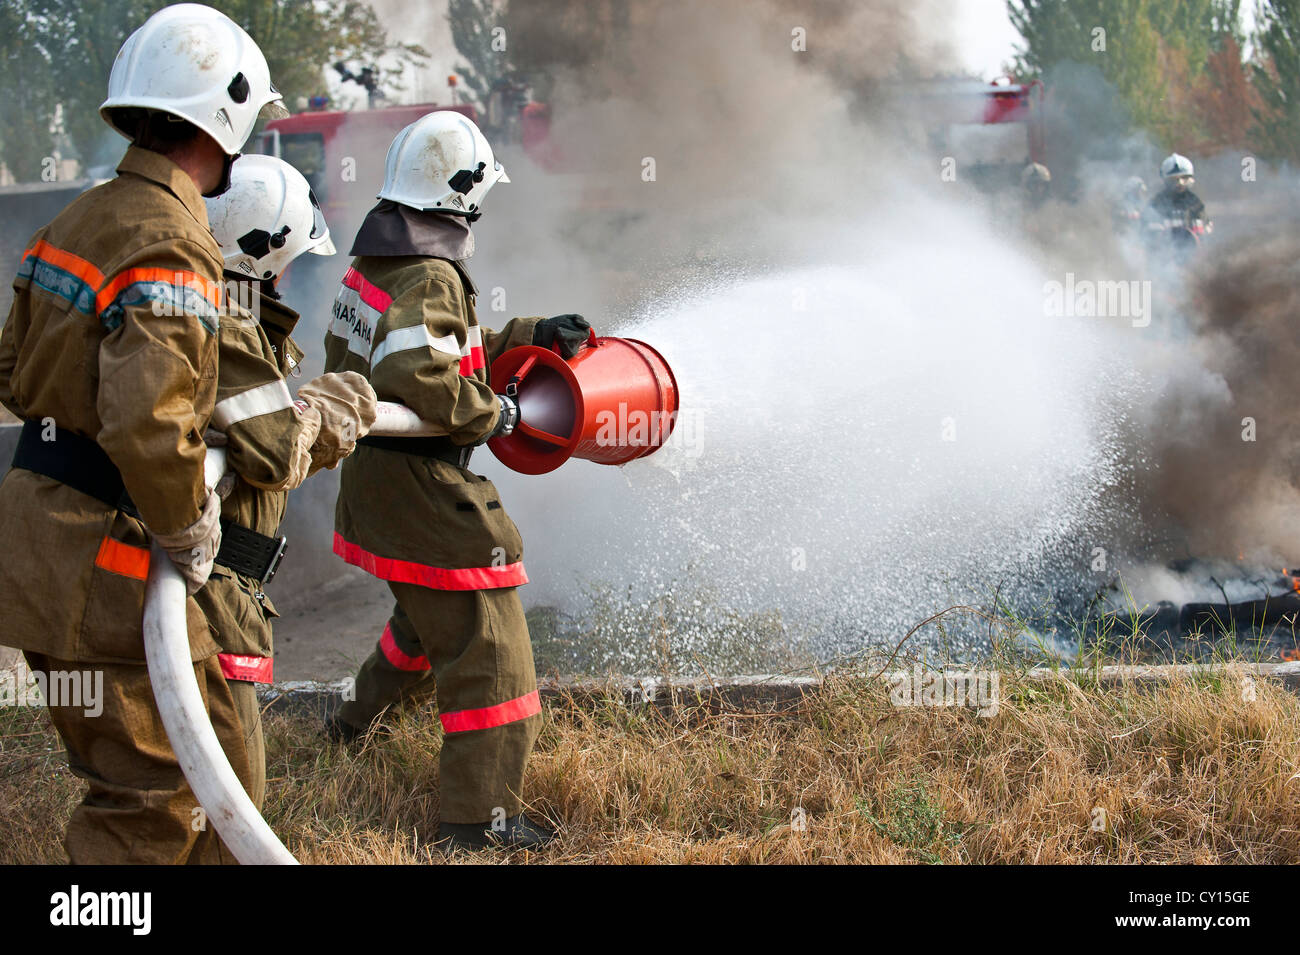 Kyrgyz Republic firefighters extinguish a controlled fire during a demonstration at the Transit Center at Manas, - Stock Image